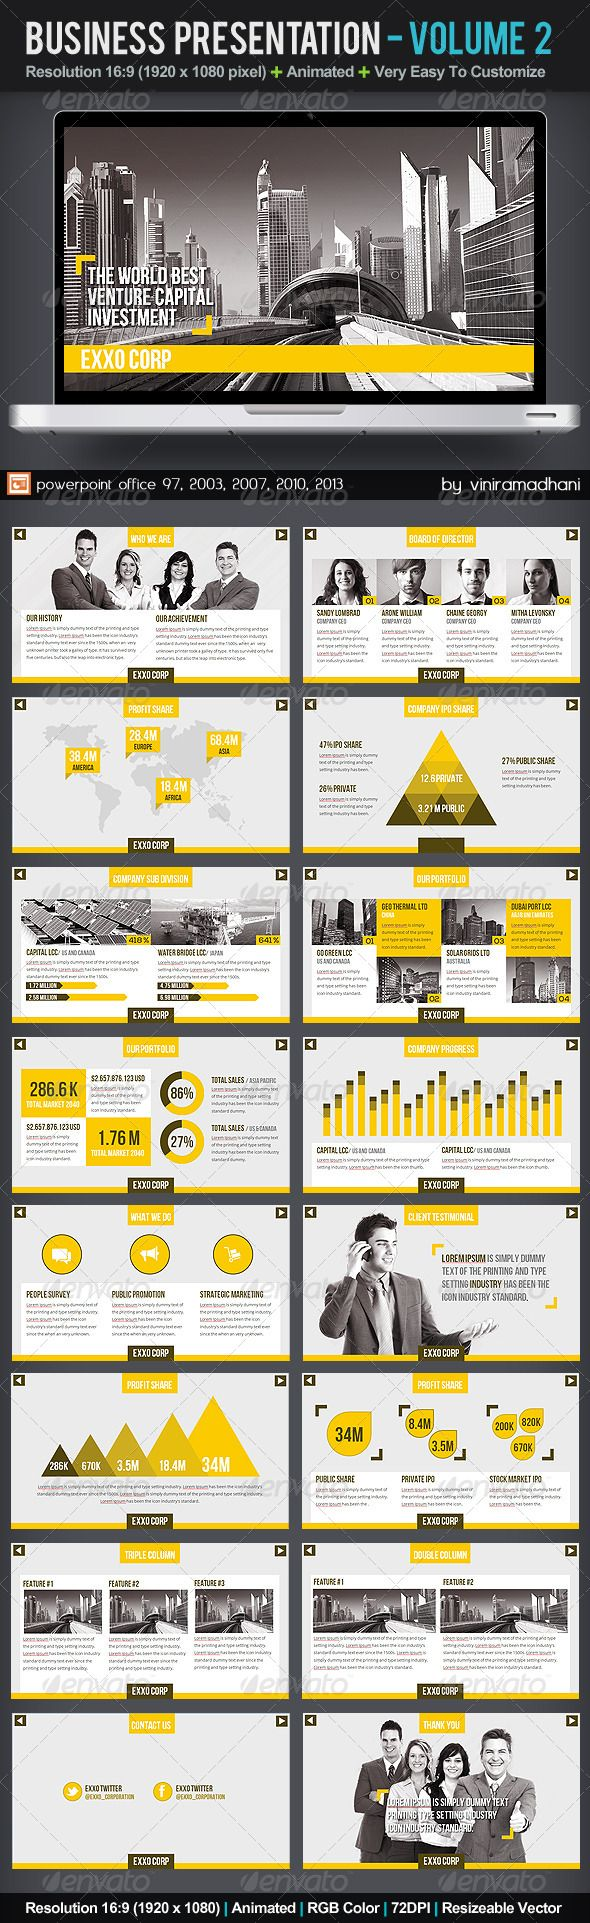 Business Presentation | Volume 2 - Business Powerpoint Templates